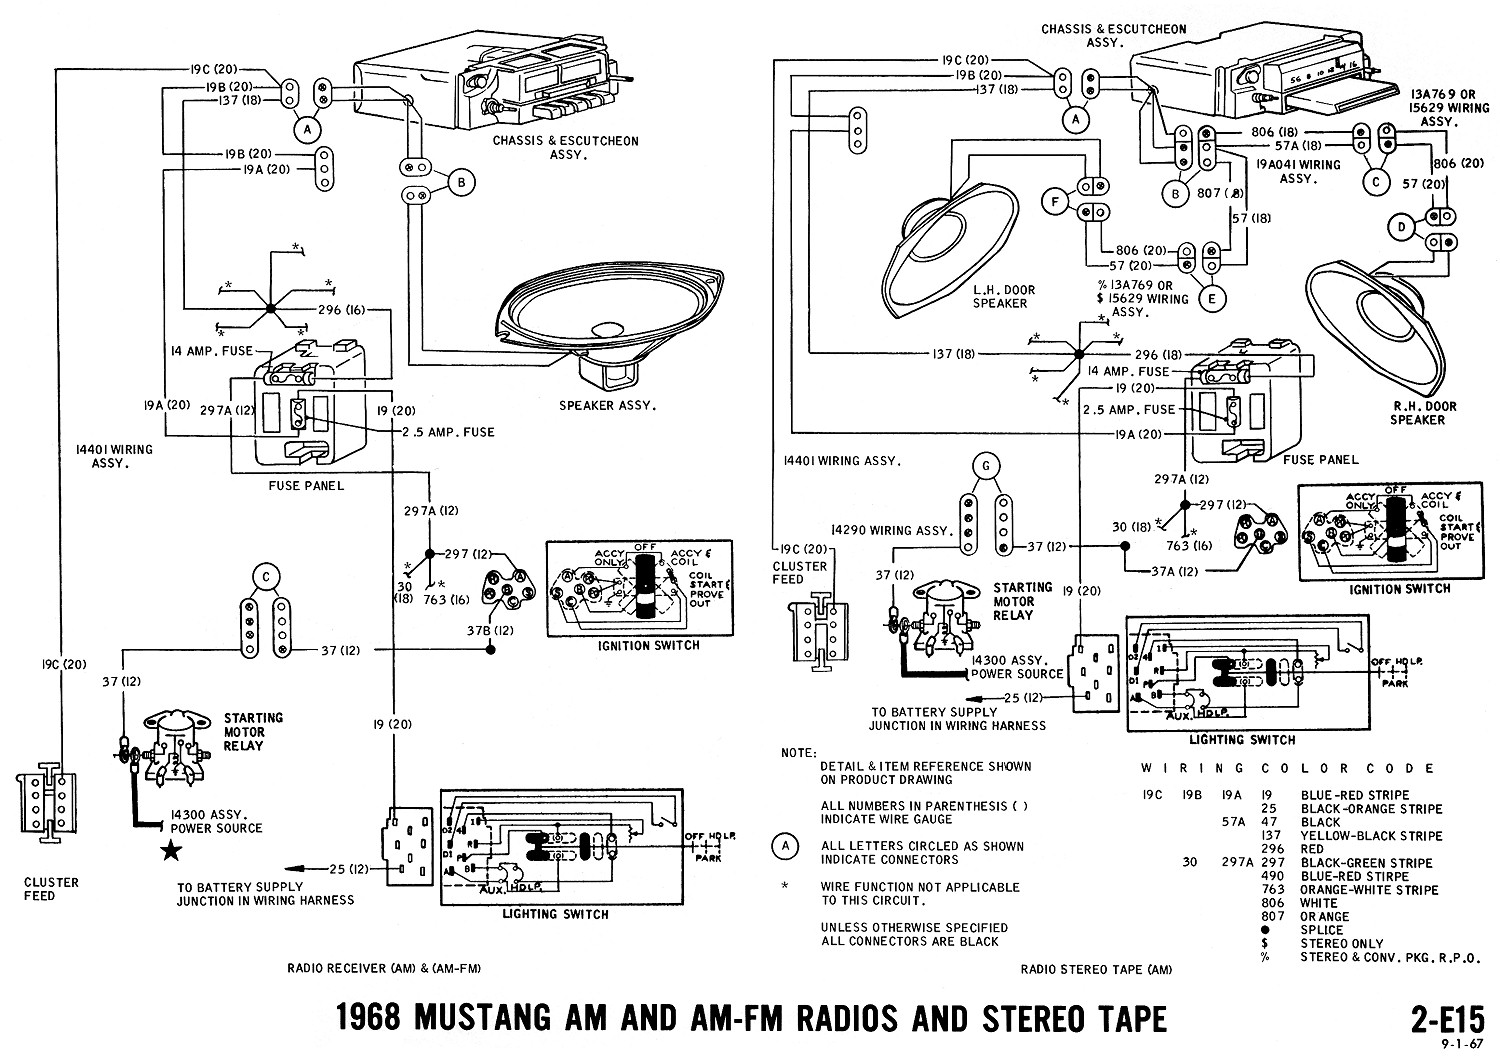 medium resolution of 1968 mustang radio wiring wiring diagram files 1968 mustang radio wiring 1968 mustang radio wiring